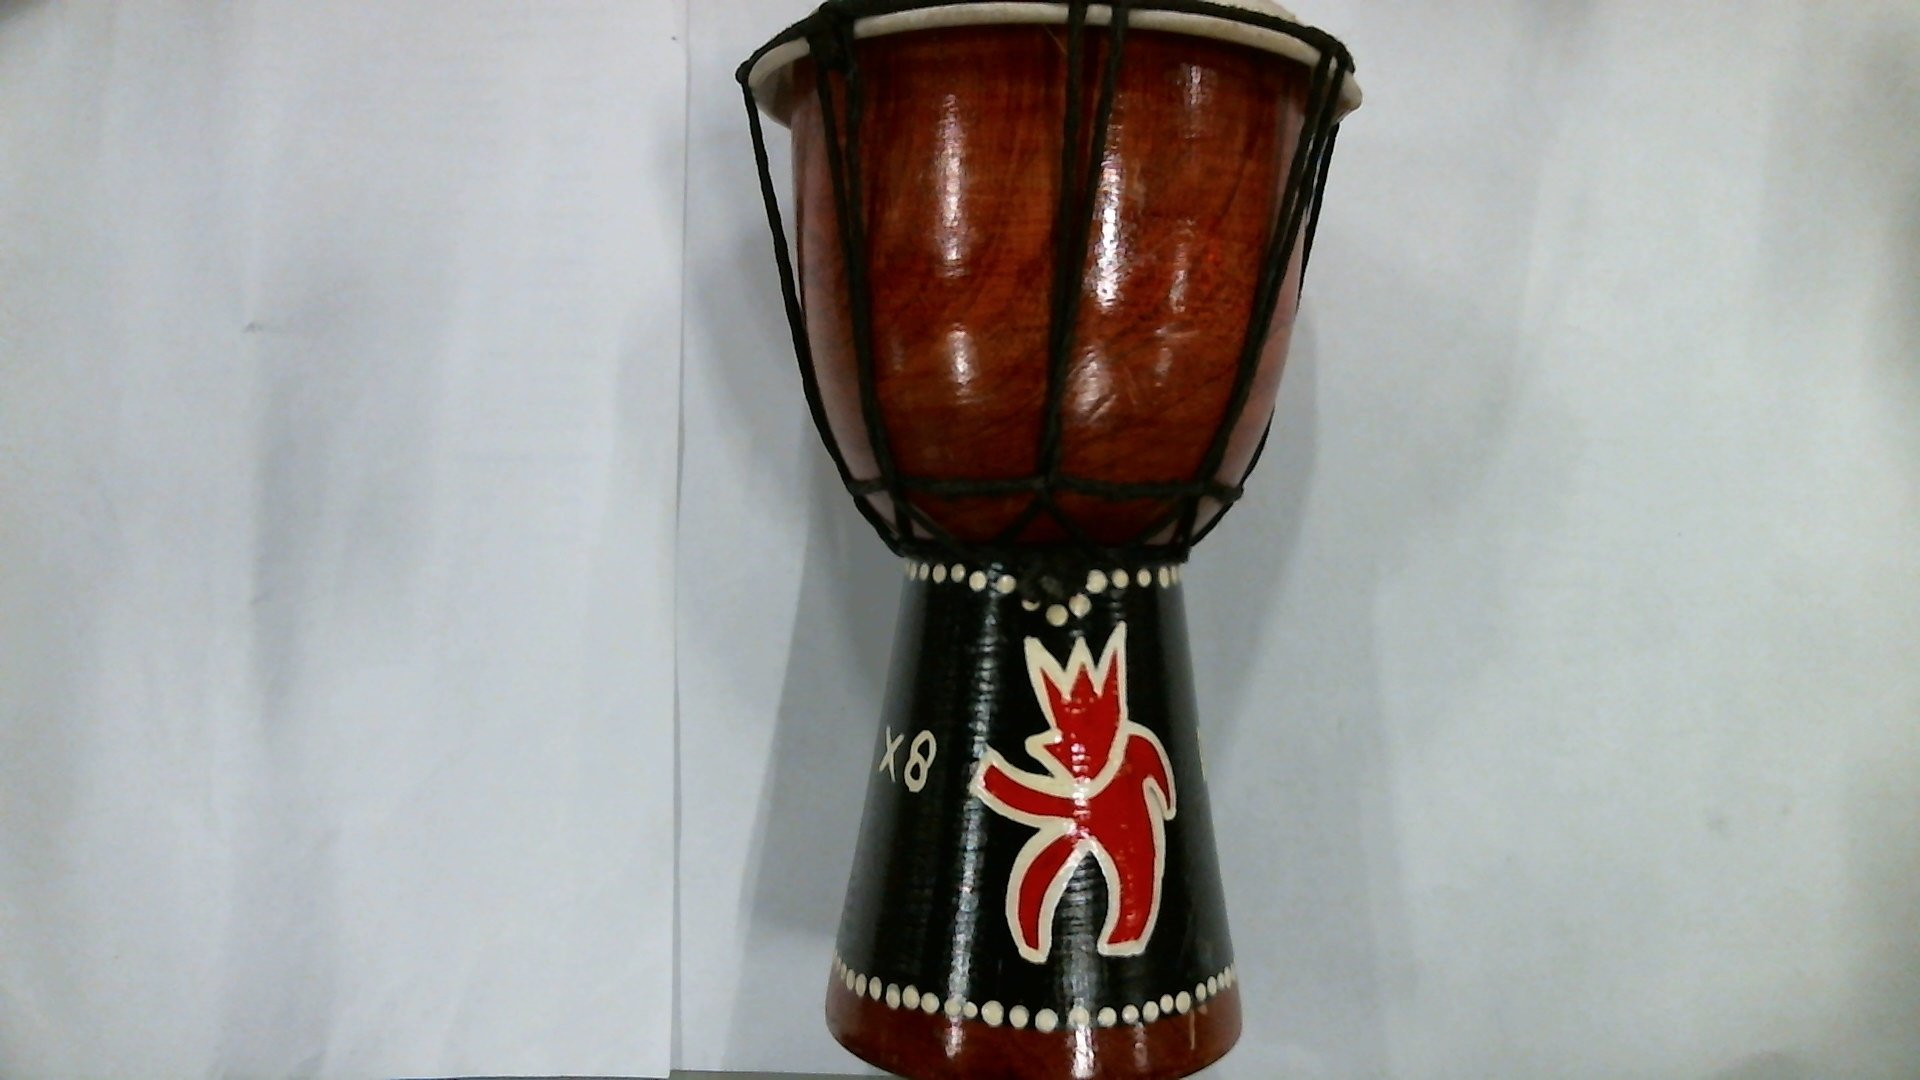 X8 Drums MINI-X8 Mini Djembe Drum with X8 Drums Logo